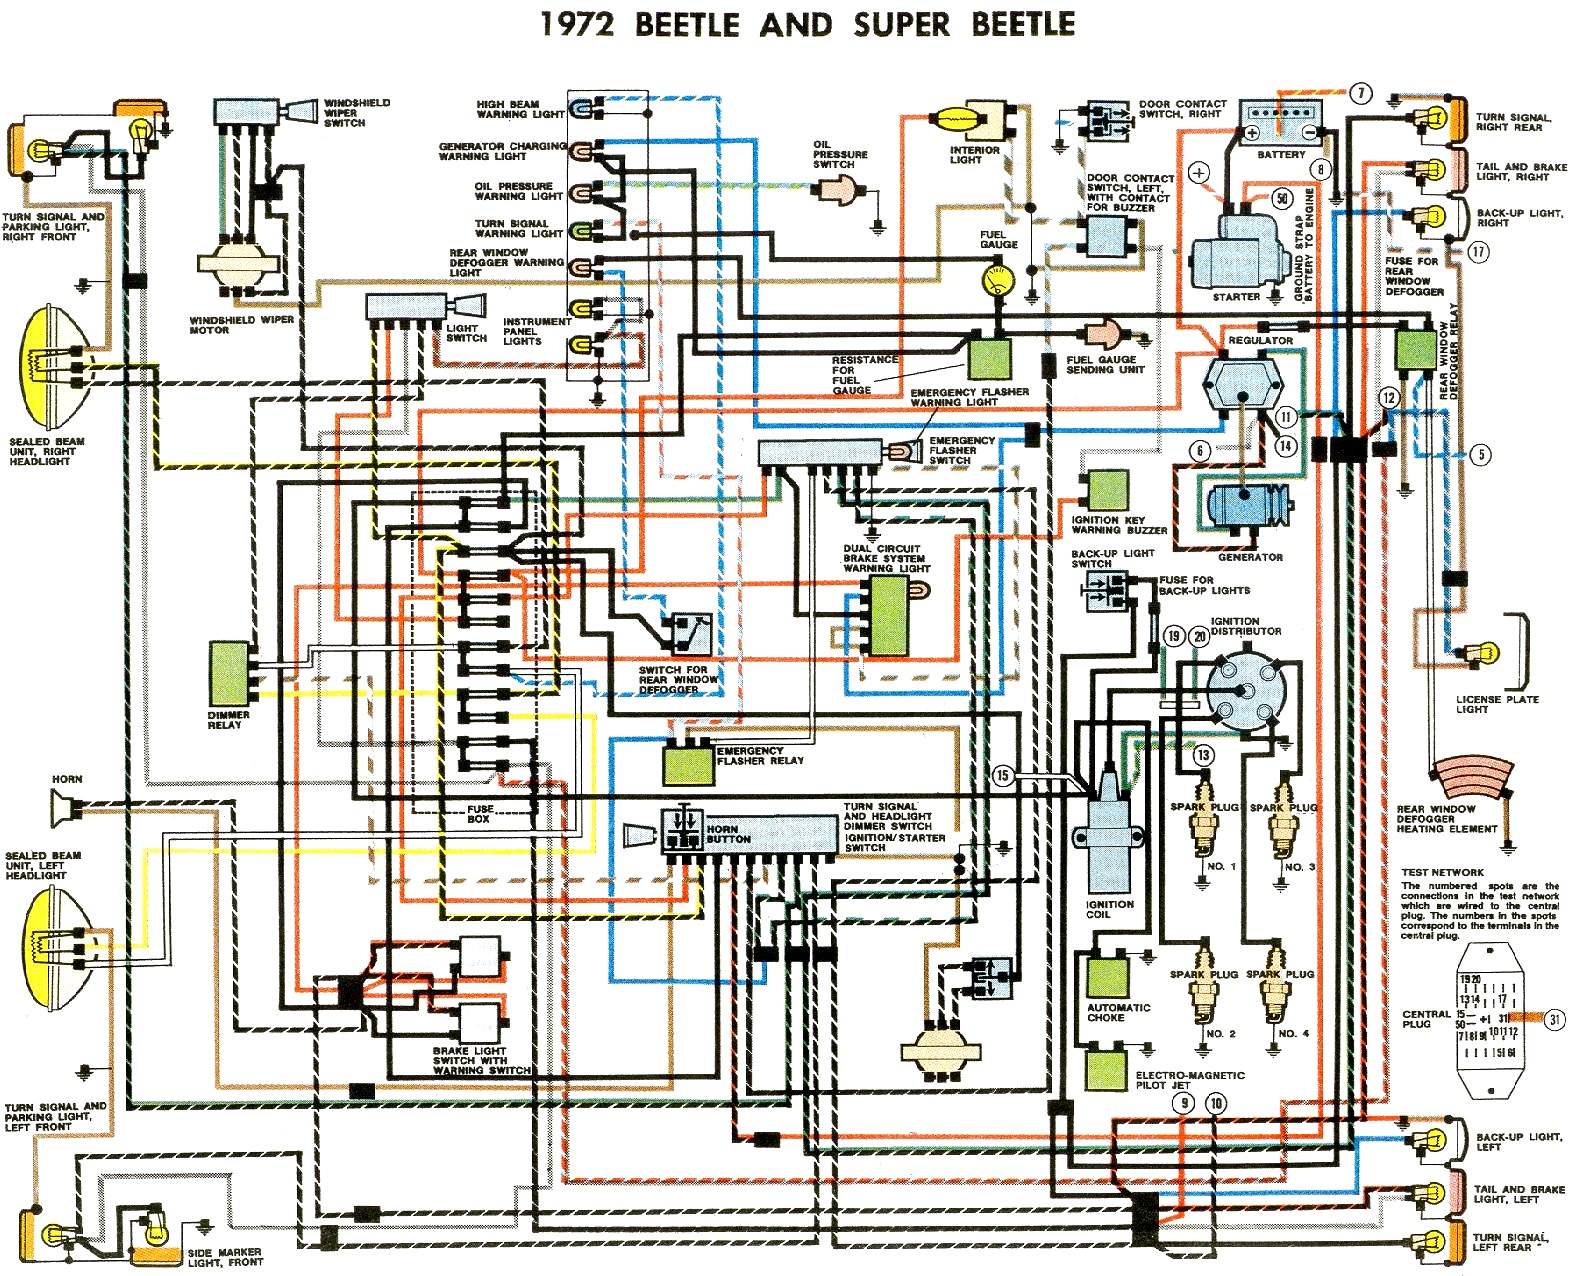 bug_72 1972 beetle wiring diagram thegoldenbug com 1972 beetle wiring diagram at bayanpartner.co